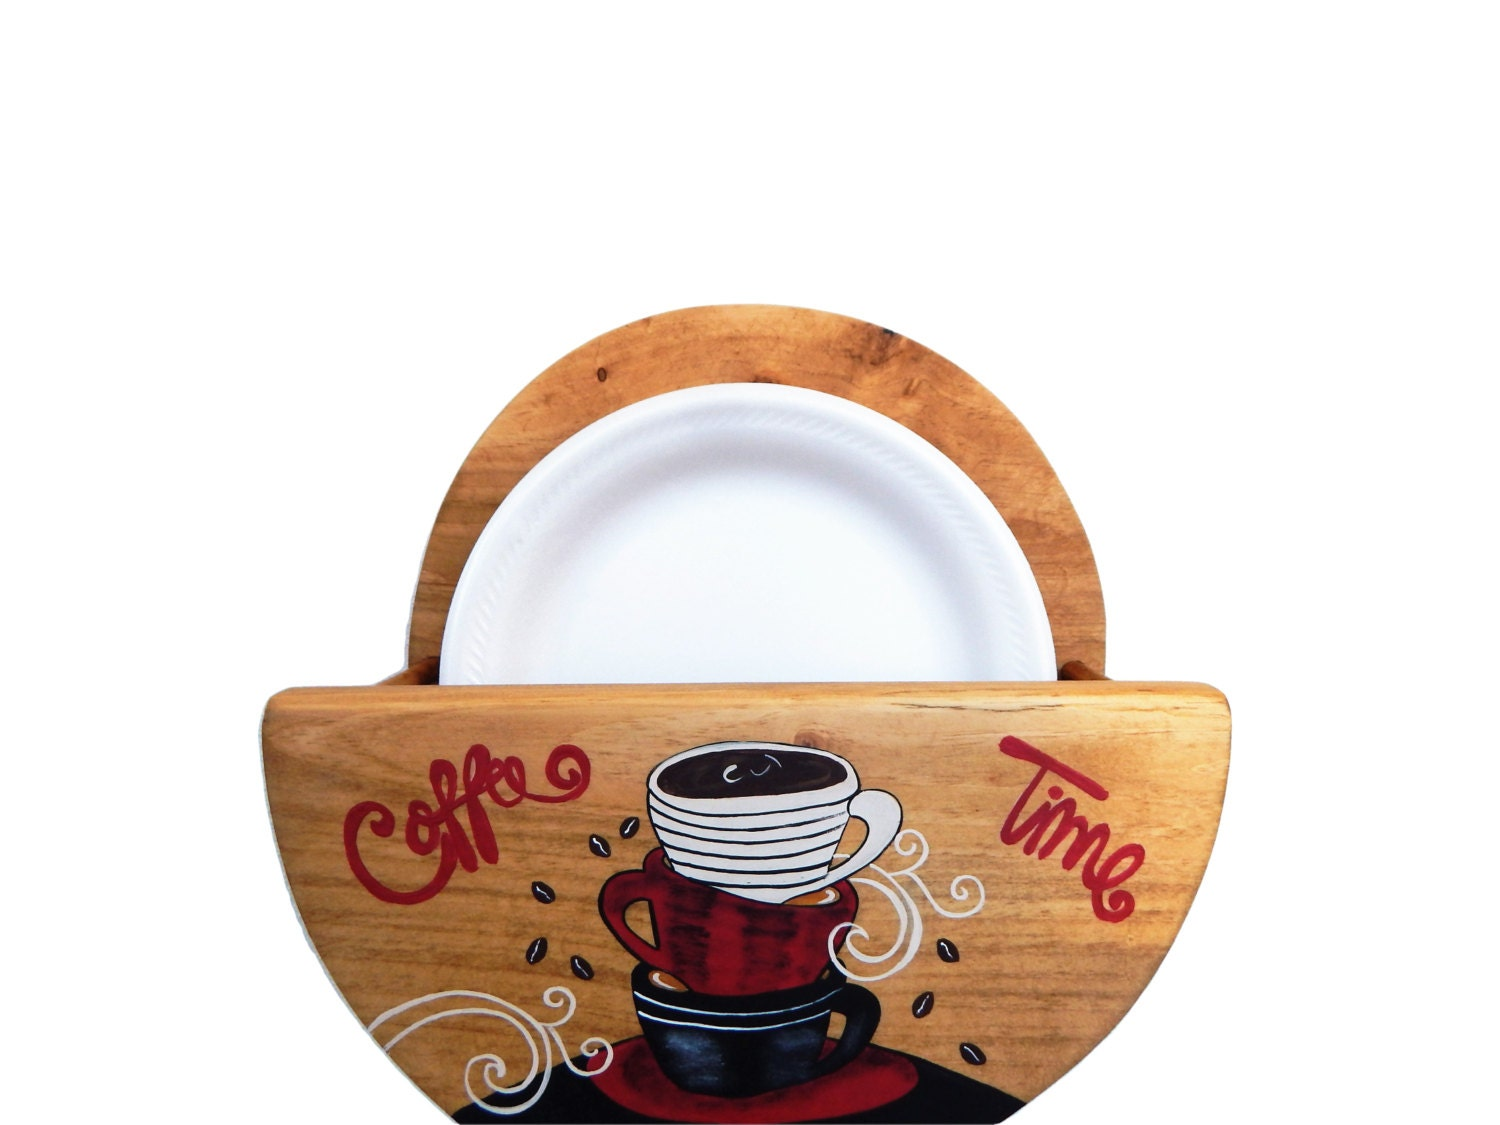 Paper Plate Holder Wooden Plate Holder Coffee Themed Kitchen Coffee Theme Coffee Gift Coffee Lovers storage for plates Plate Storage  sc 1 st  SealsFamilyWoodworks & Paper Plate Holder Wooden Plate Holder Coffee Themed Kitchen ...